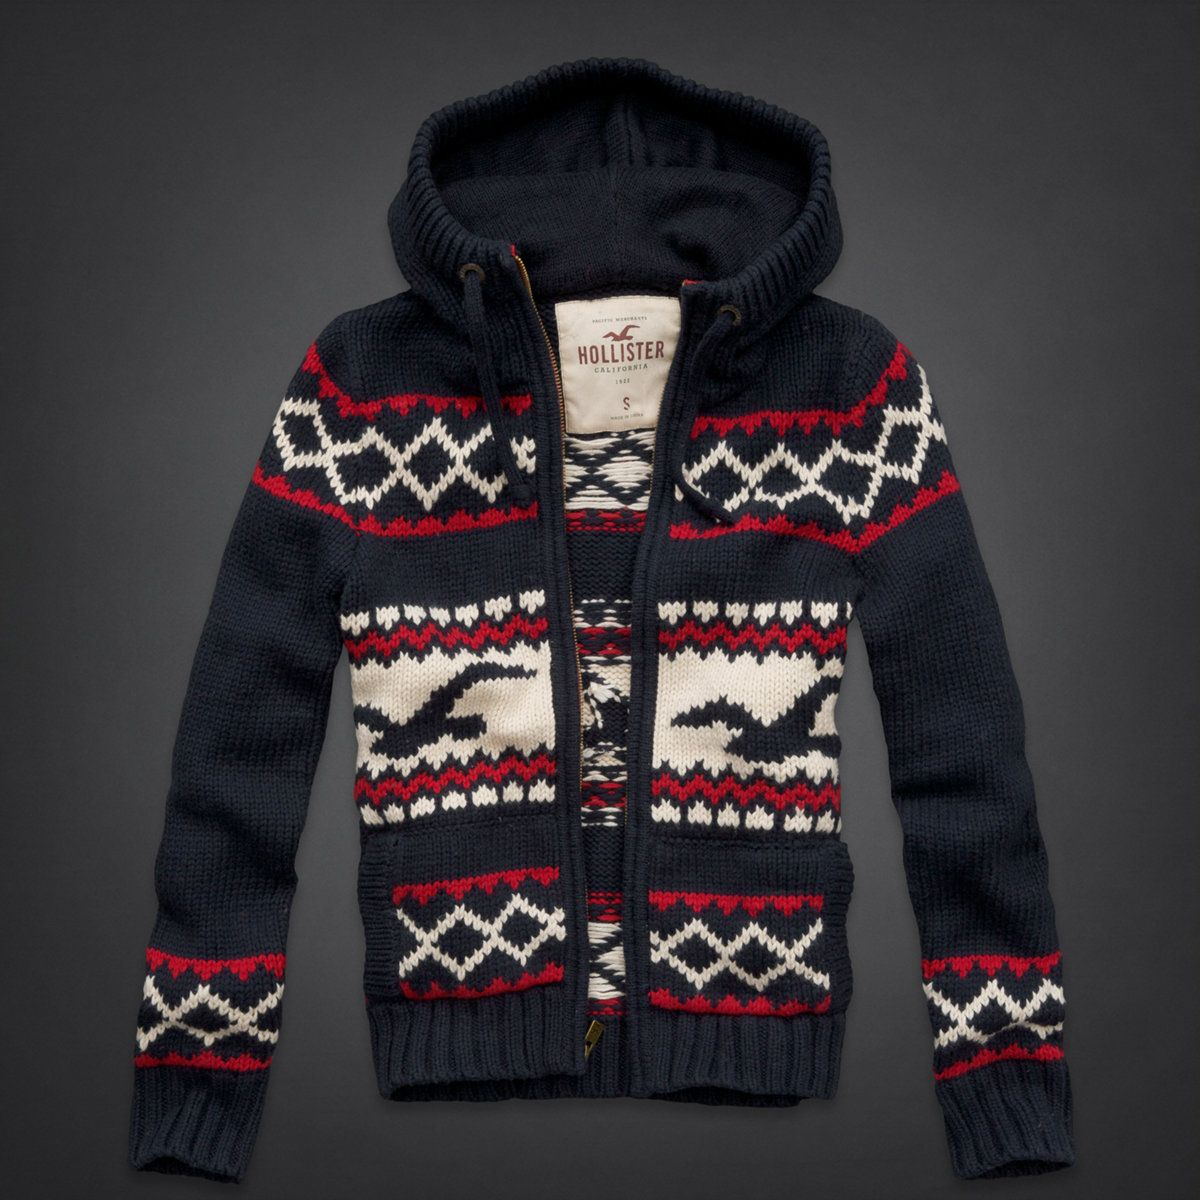 Men's Christmas Sweaters From Hollister | Gifts For Men ...